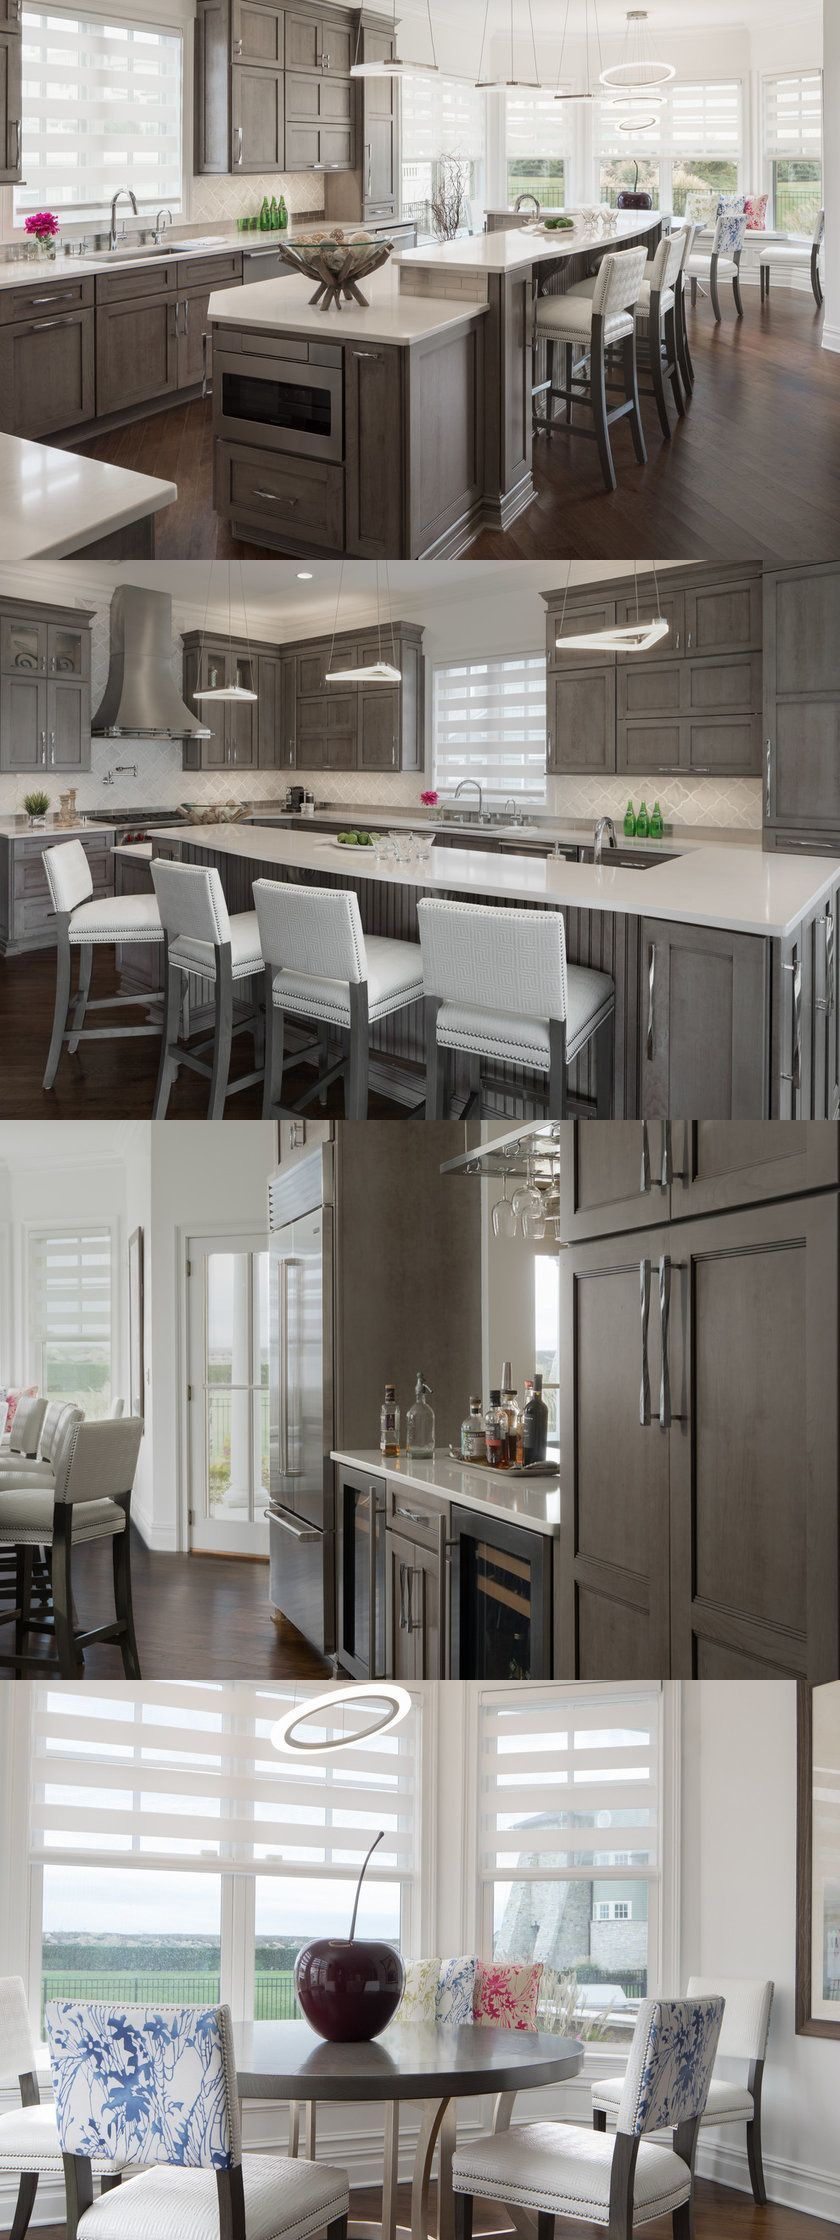 Pin By Stephania Andrew On Kitchen In 2020 Wood Floors Dark Wooden Floor Kitchen Photos